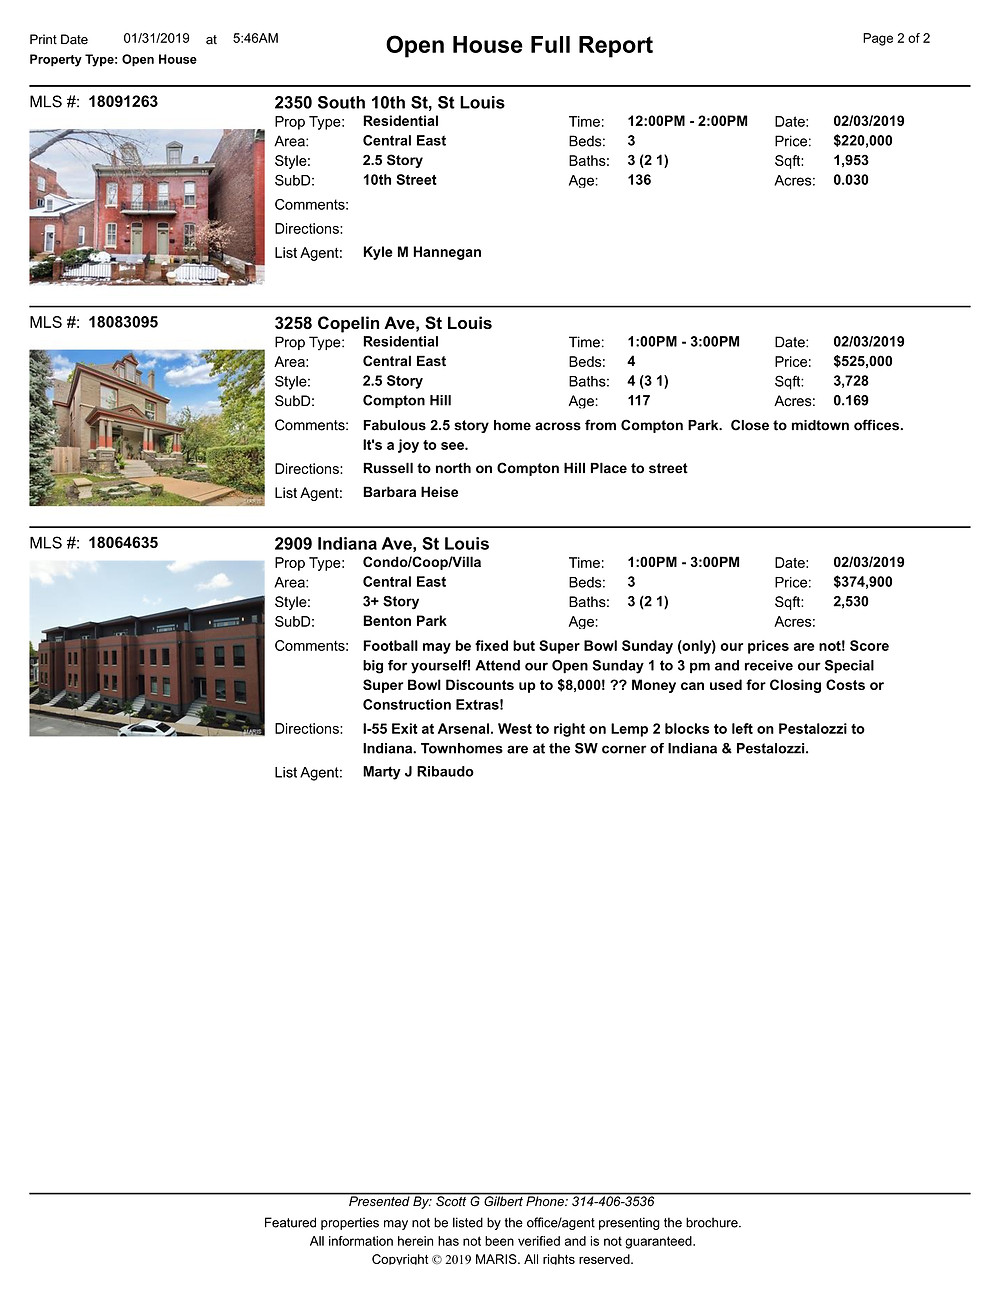 Benton Park Open Houses